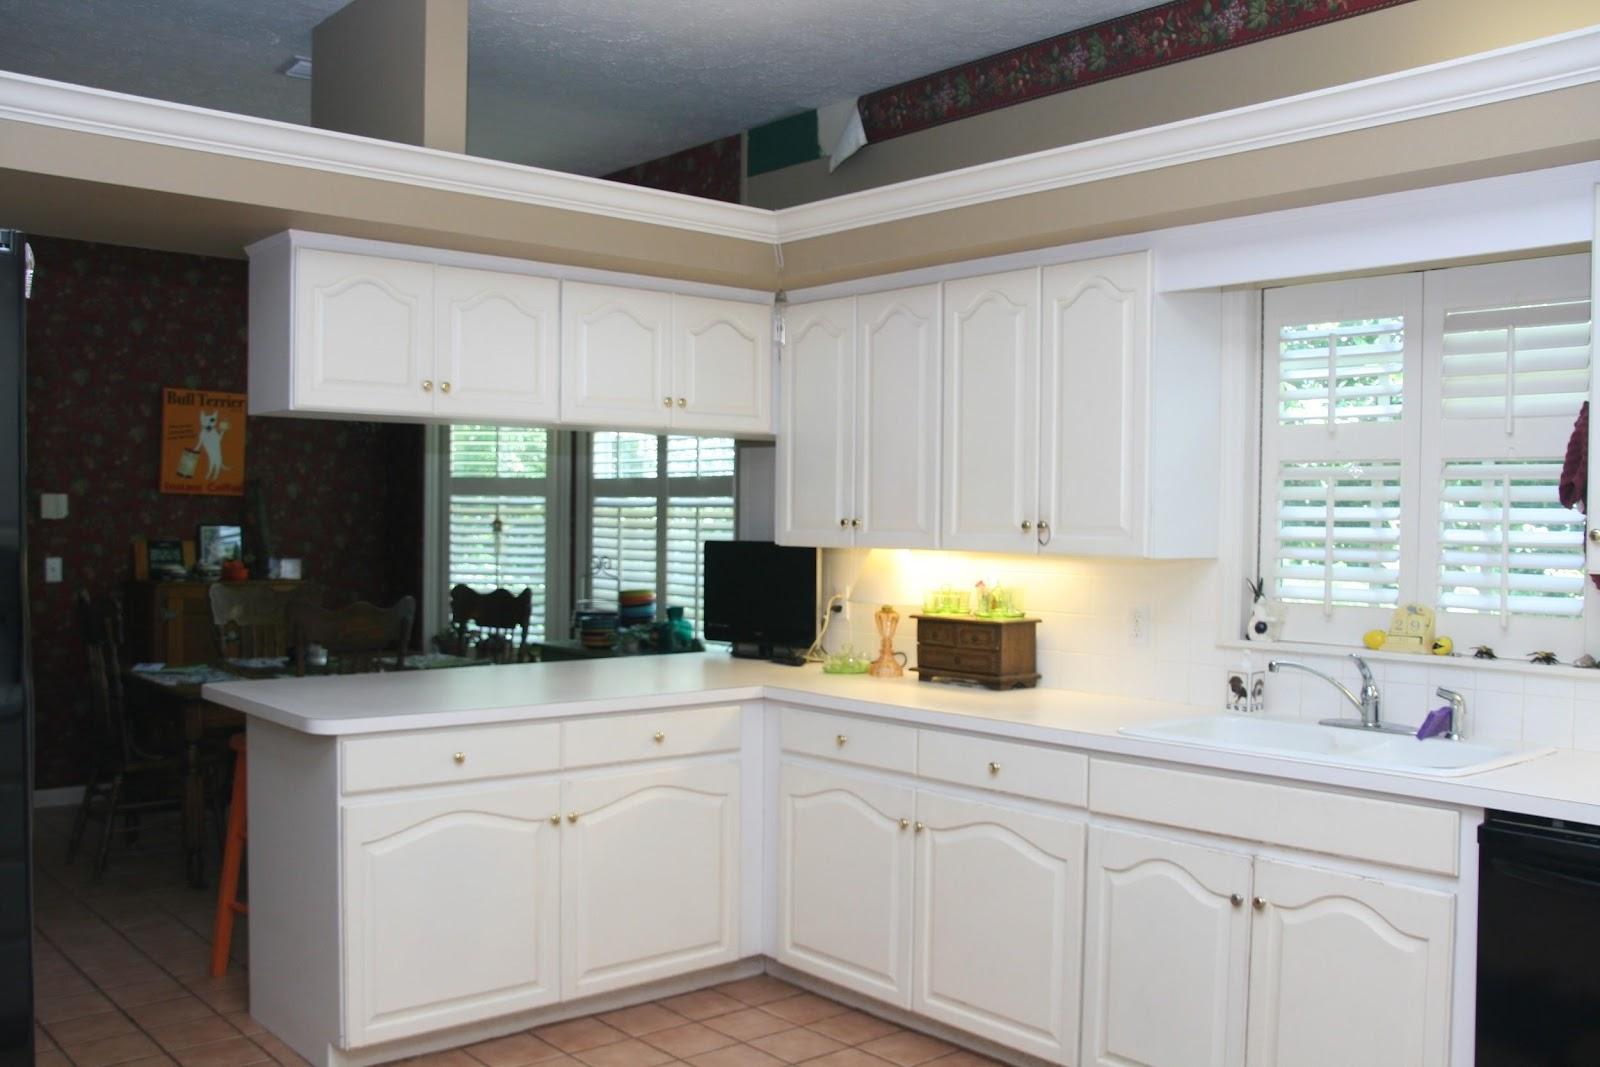 Dirty Kitchen Cabinets Here S How To Keep Them Spotlessly Clean